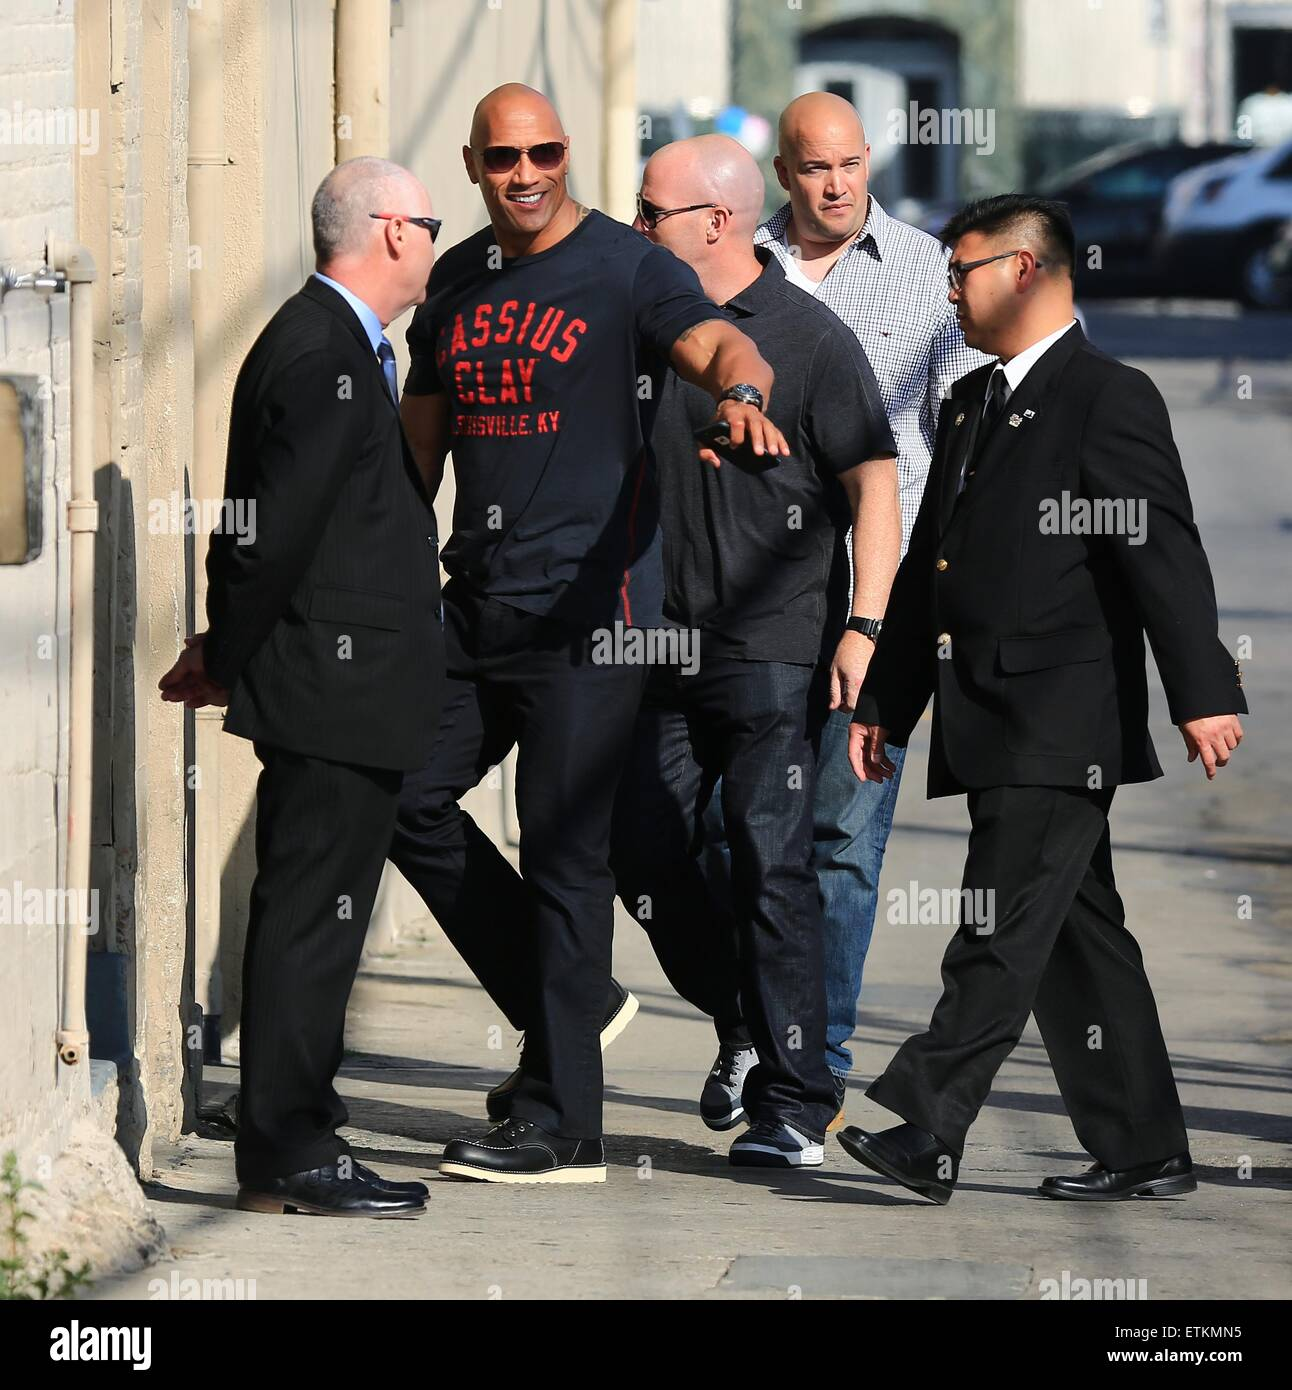 Dwayne Johnson At The Jimmy Kimmel Studios For An